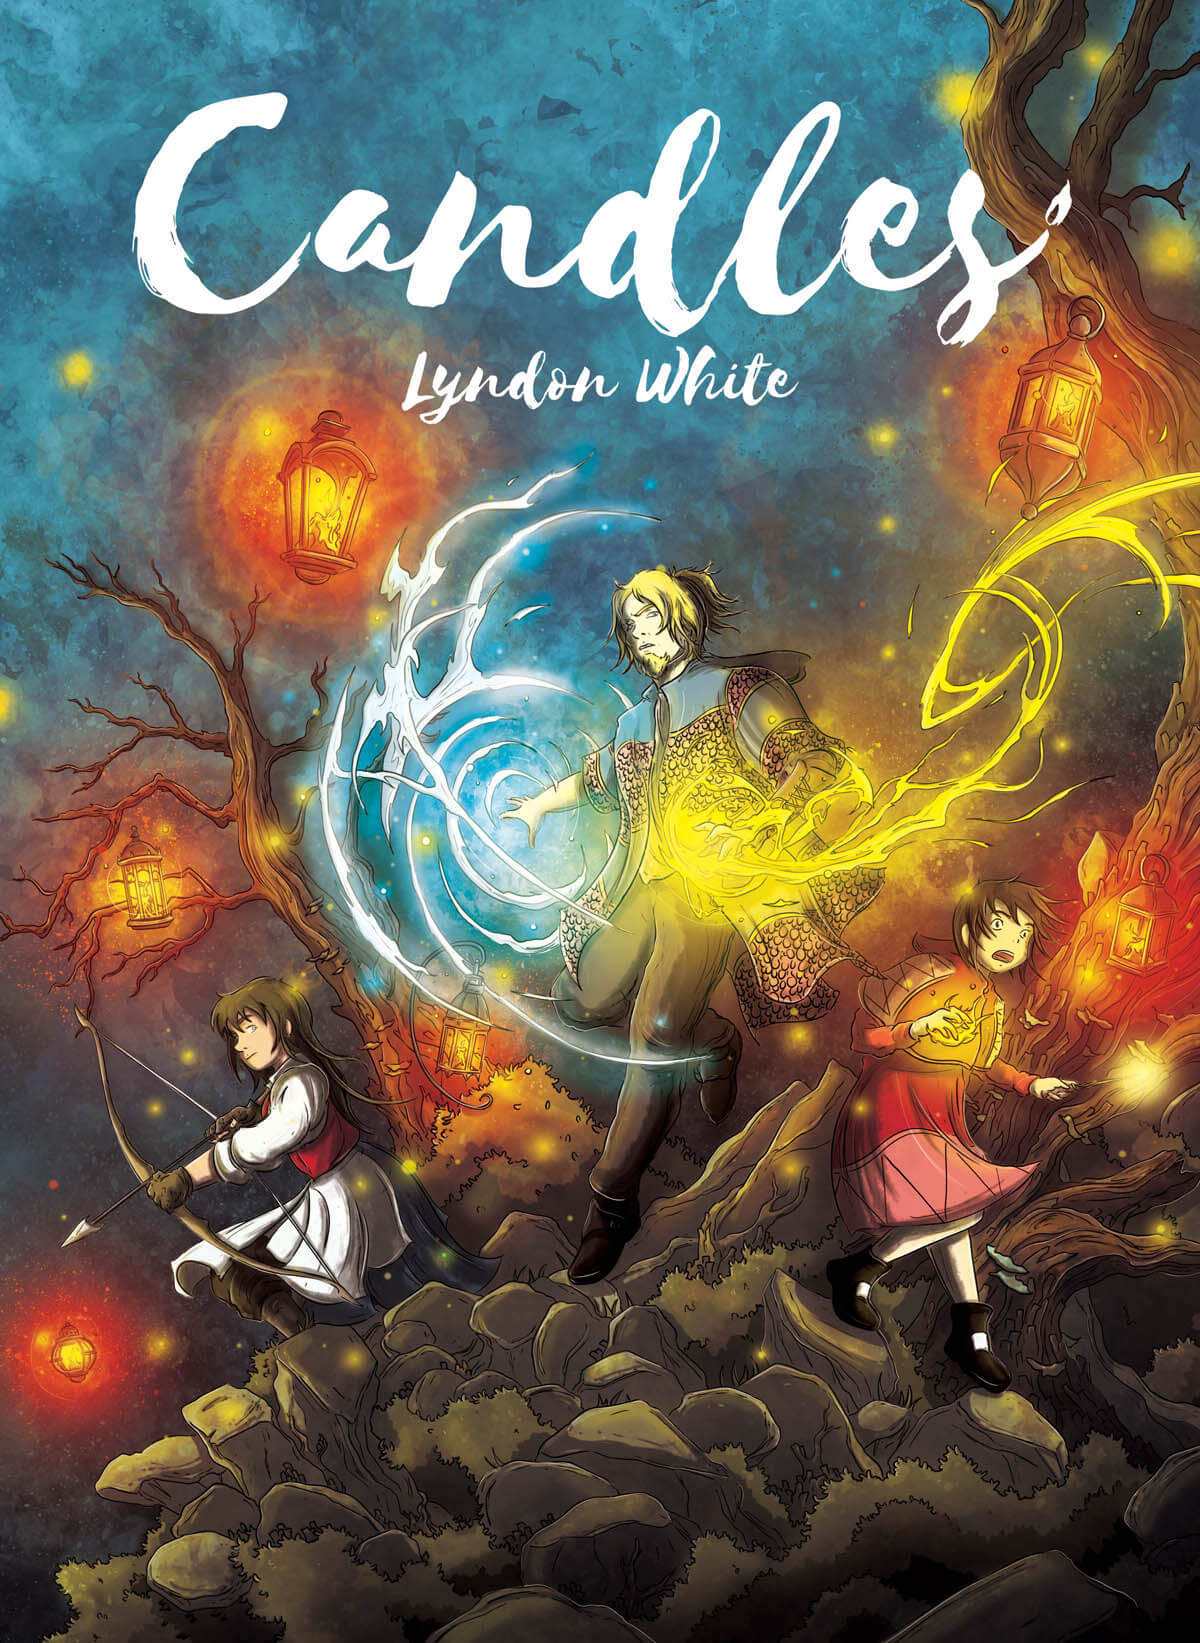 Cover image for fantasy graphic novel Candles by Lyndon White